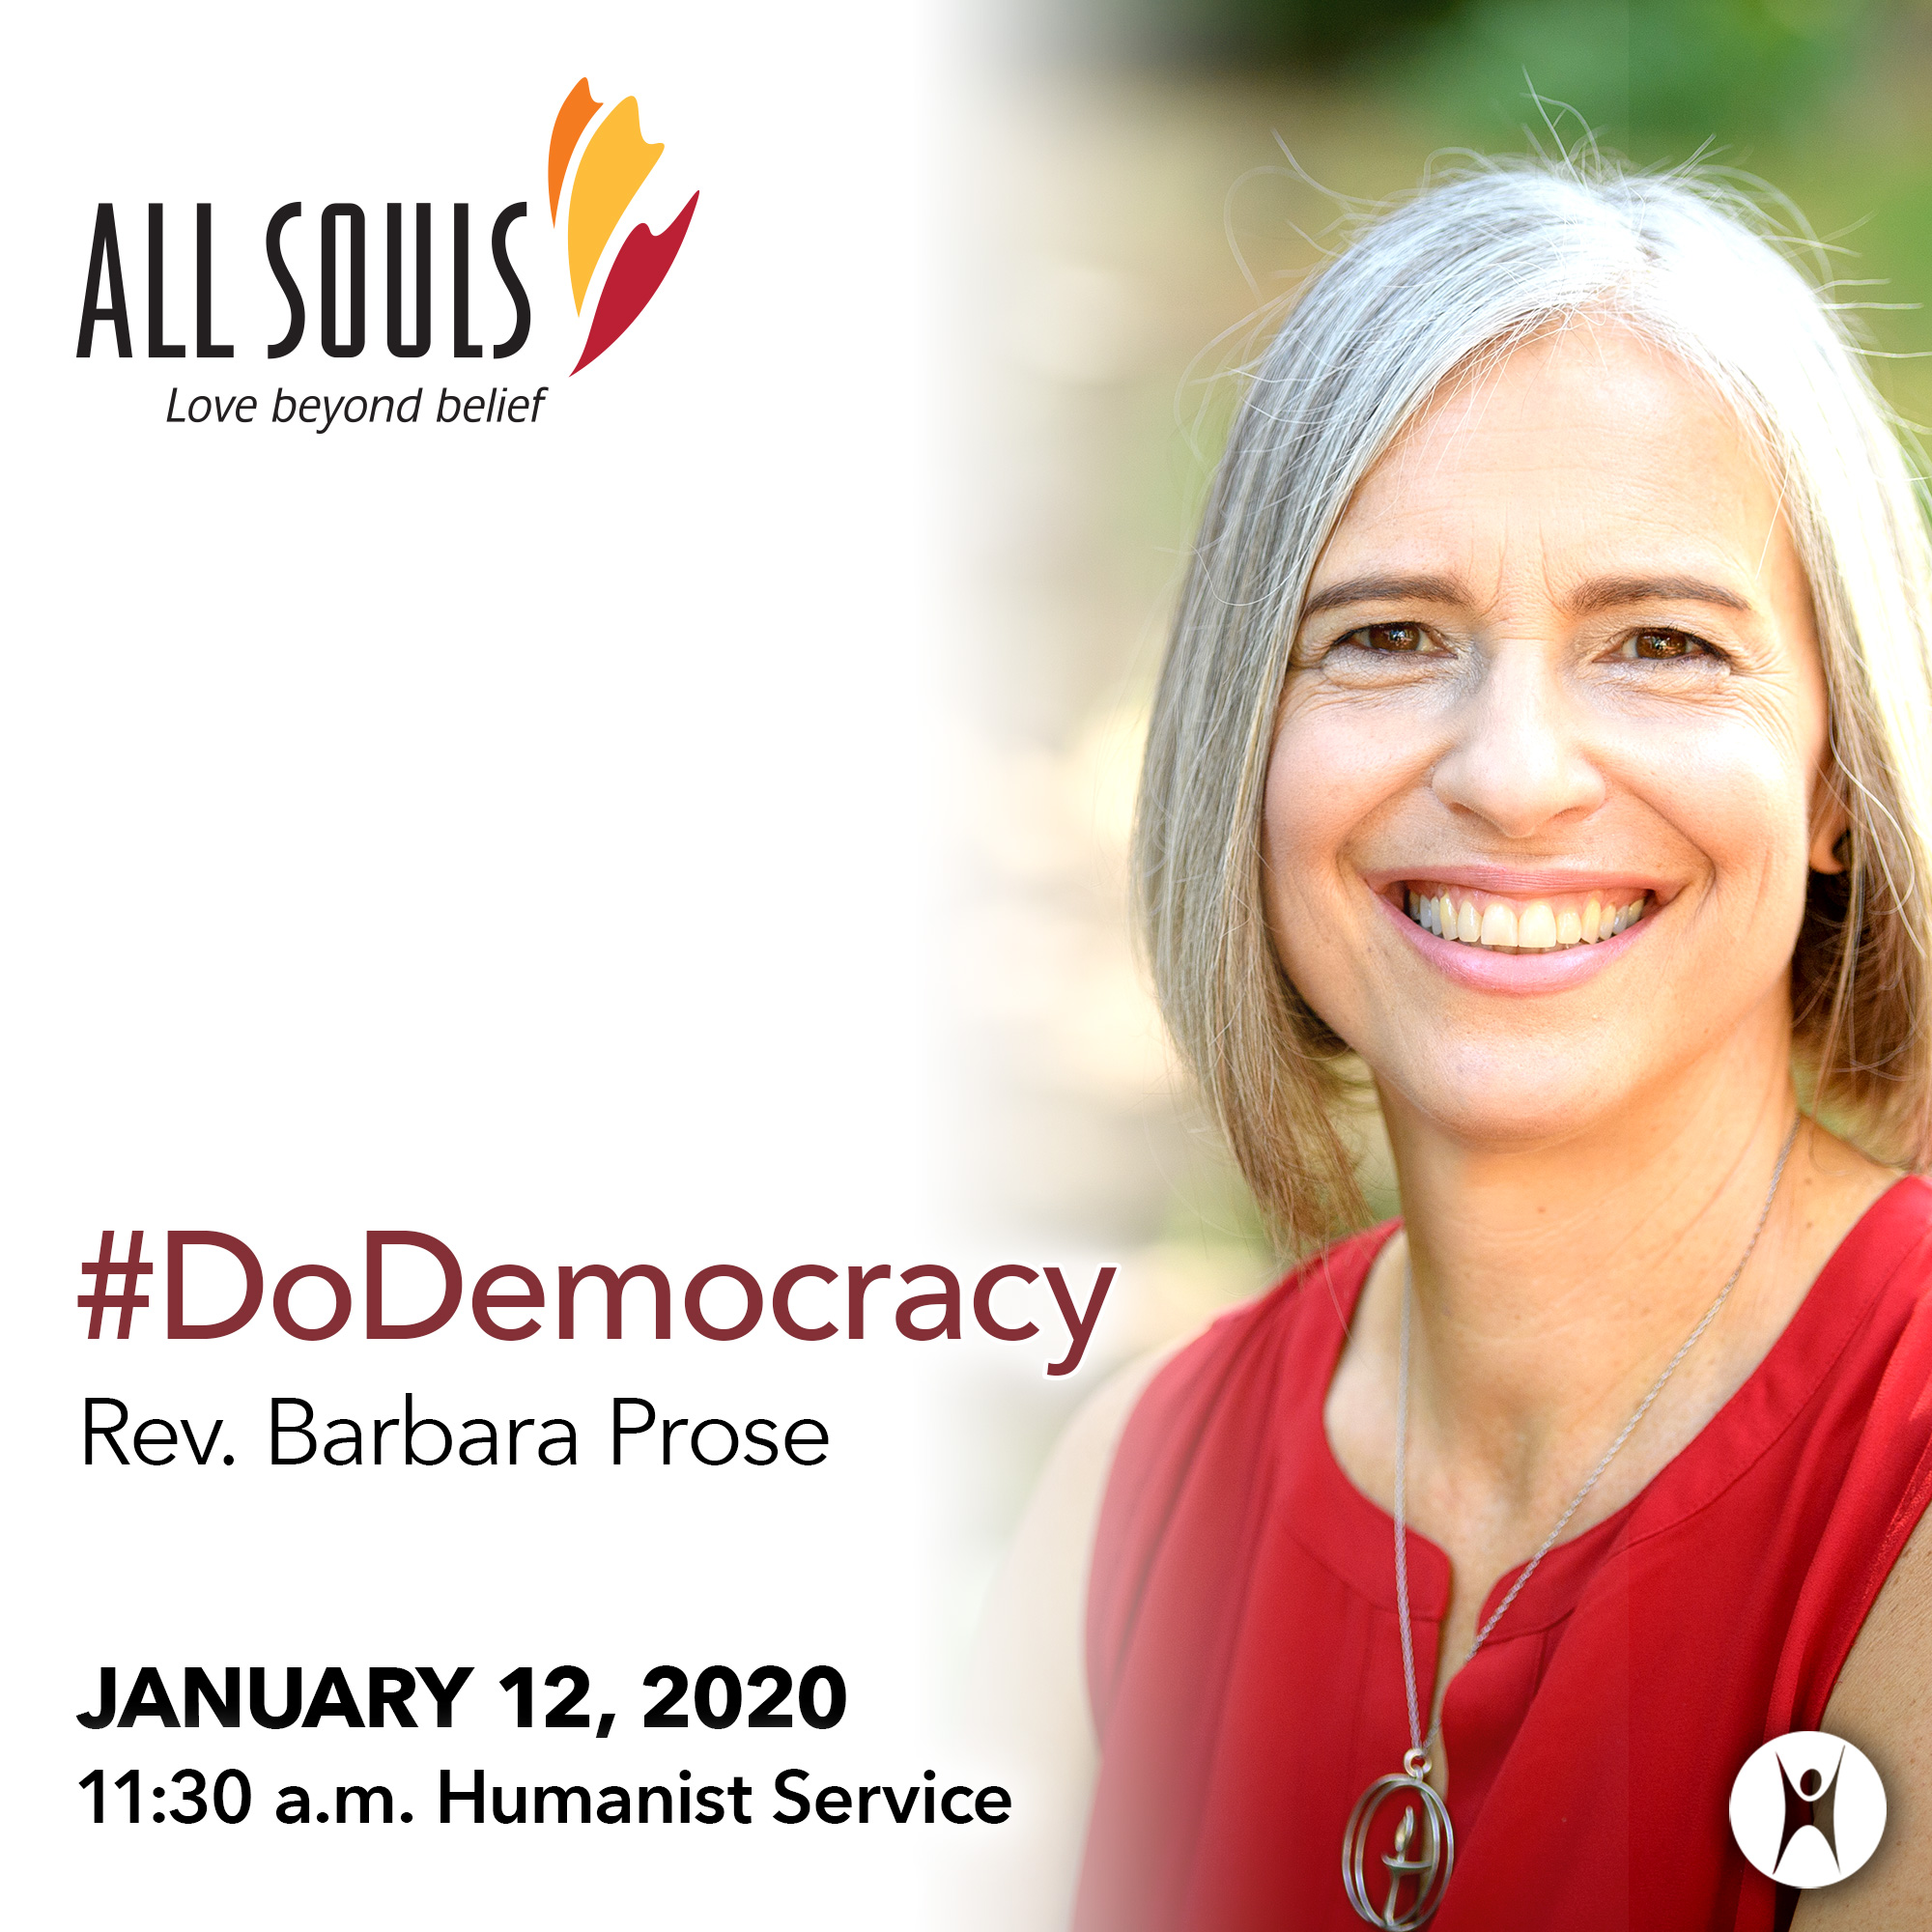 '#DoDemocracy' - A message by Rev. Barbara Prose (Humanist Service) show art